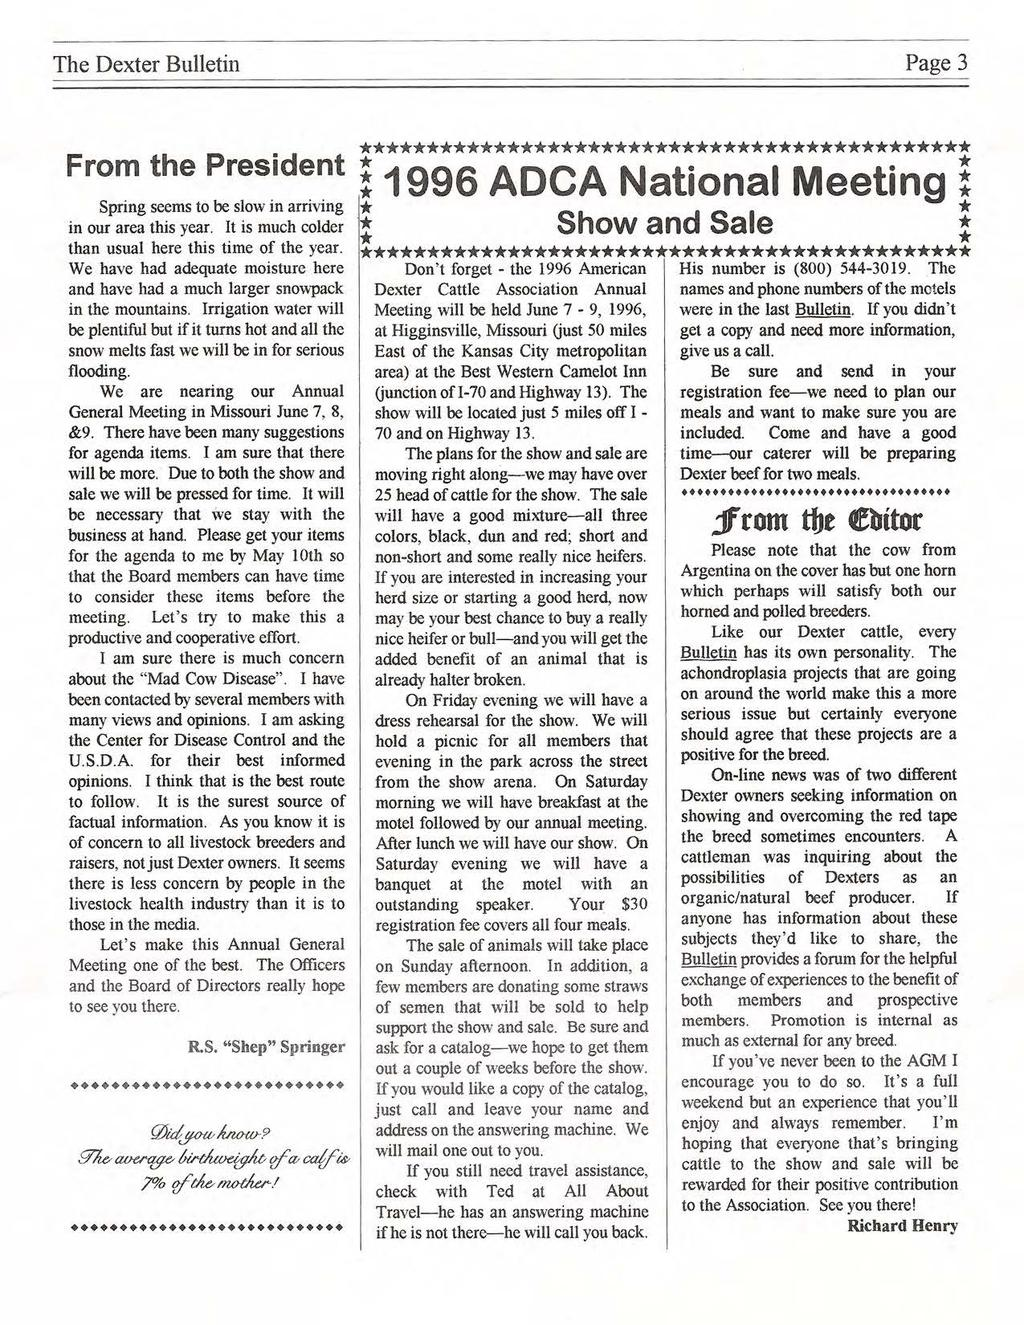 The Dexter Bulletin Page 3 F h P.d ********************************************* rom t e res ent : 1996 ADCA National Meeting : Spring seems to be slow in arriving in our area this year.